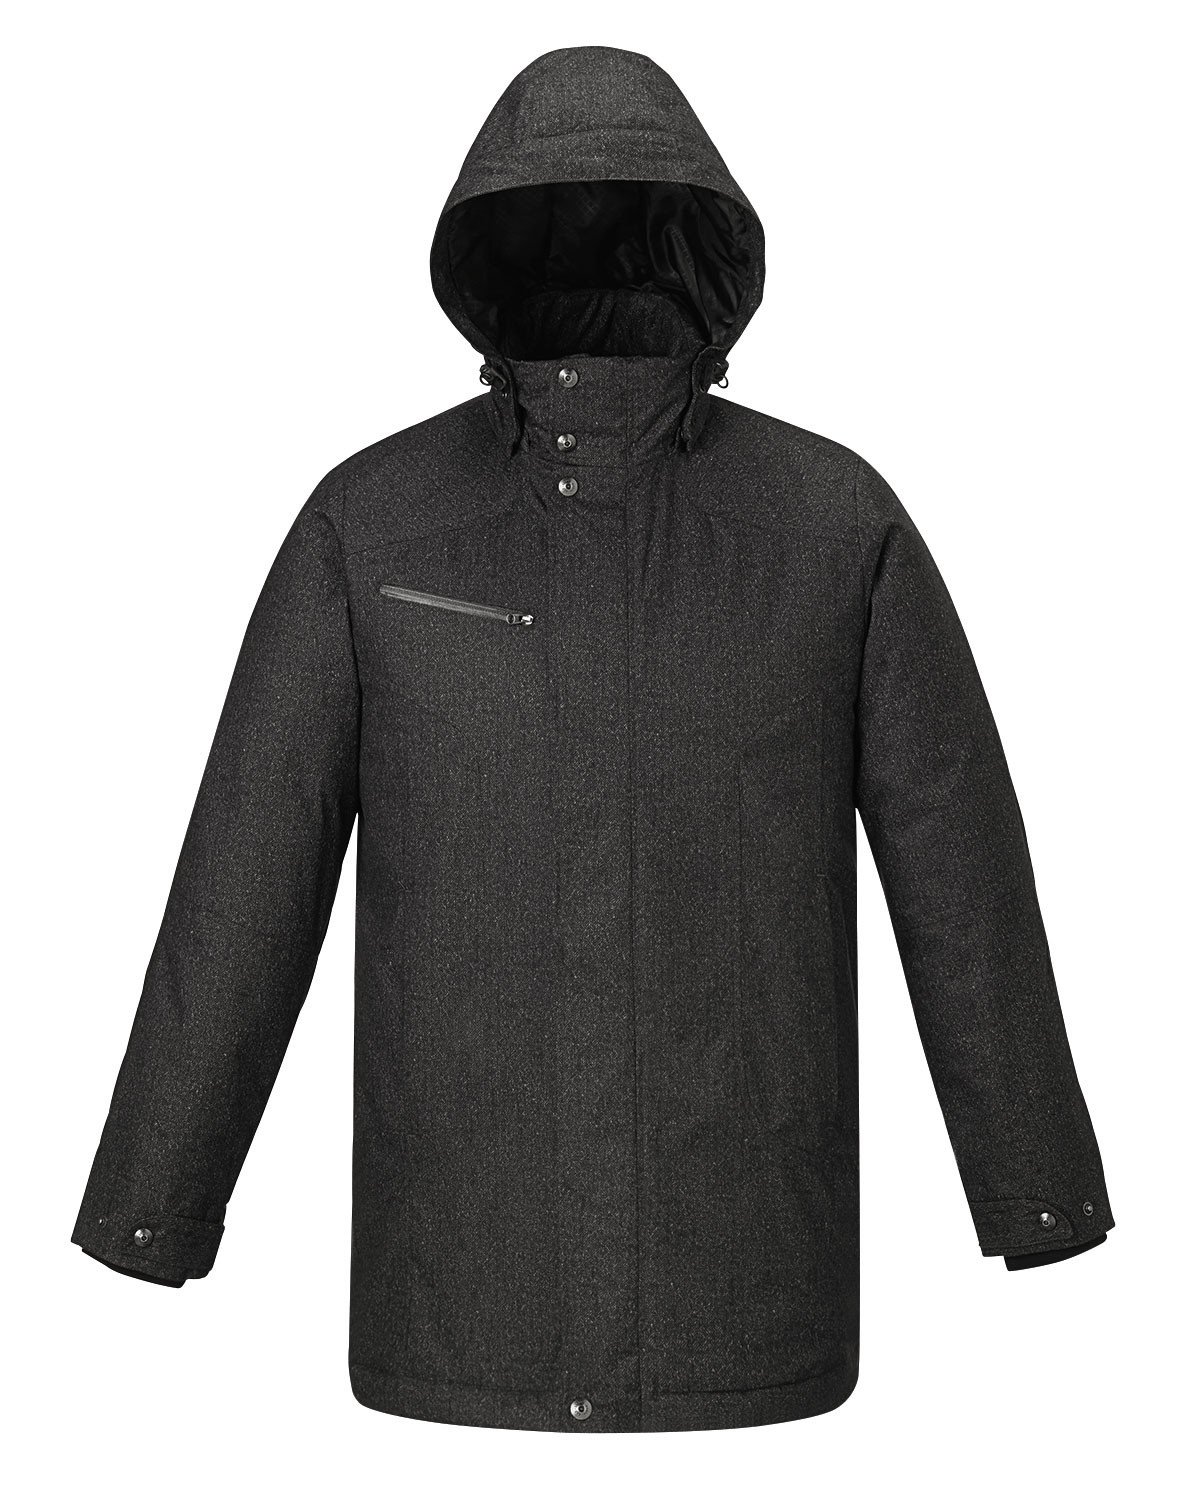 Ash City Insulated 88684 - Enroute Men's Textured Insulated ...